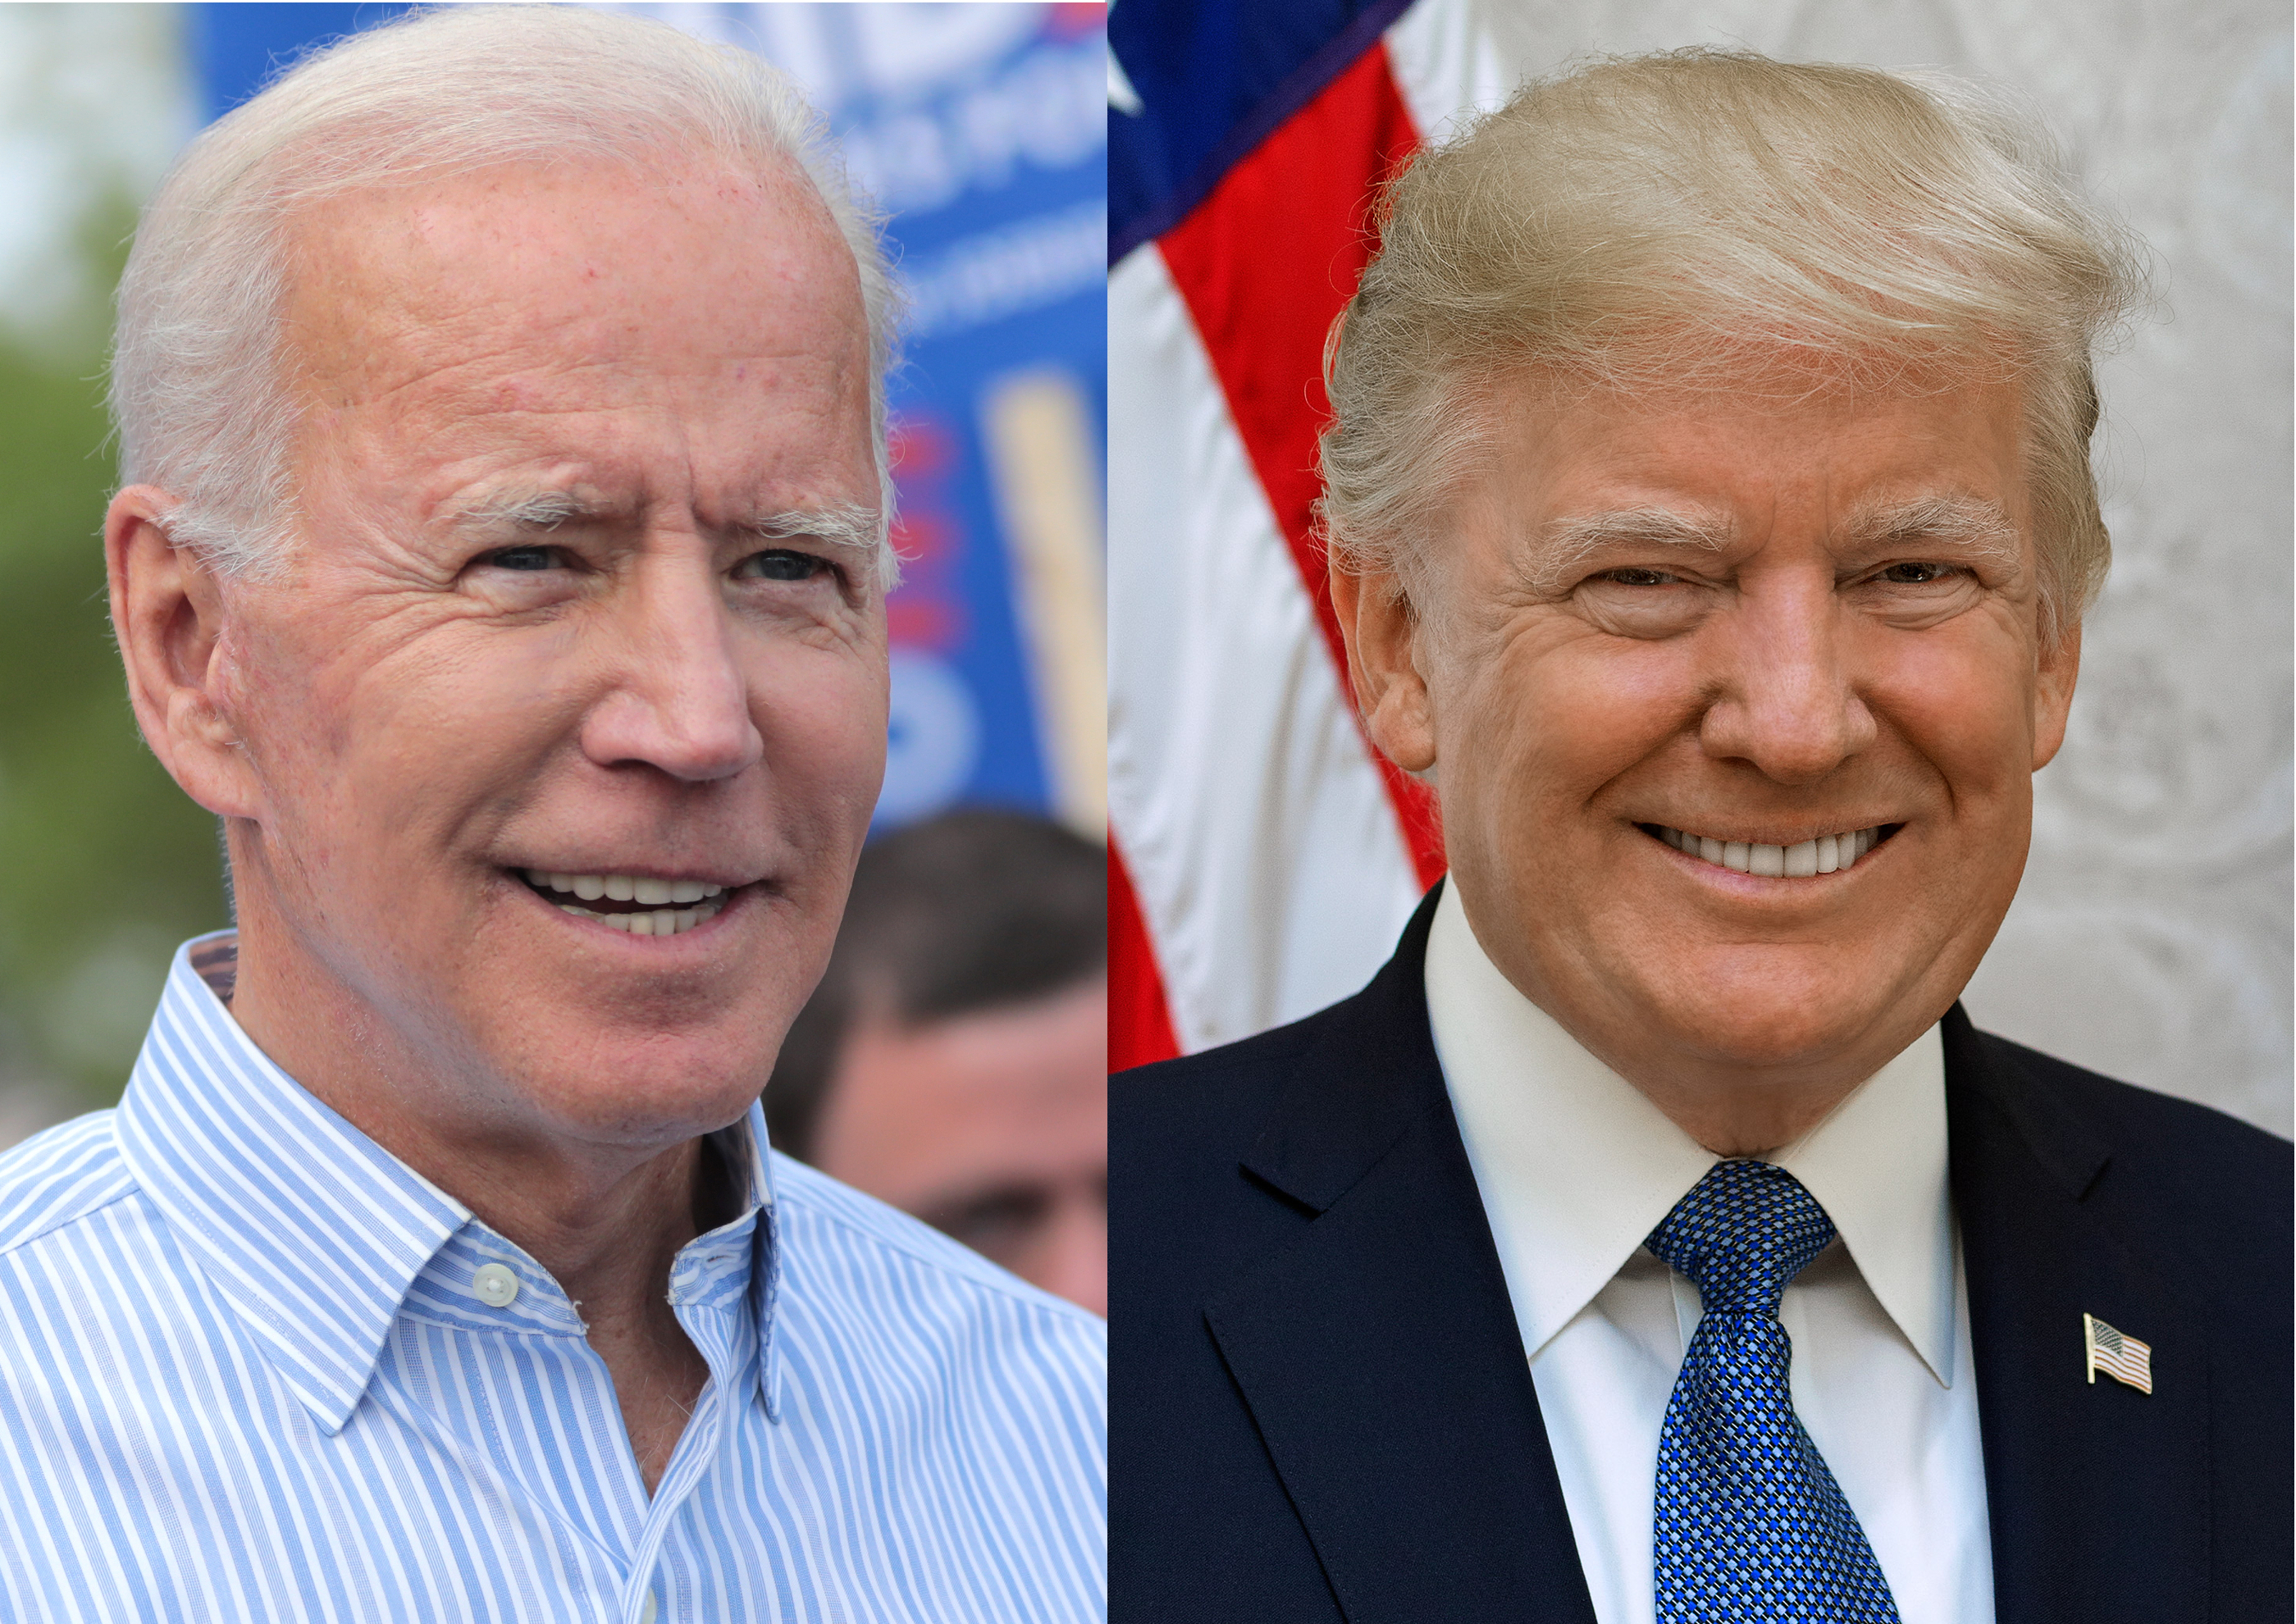 File:Joe Biden and Donald Trump.jpg - Wikimedia Commons